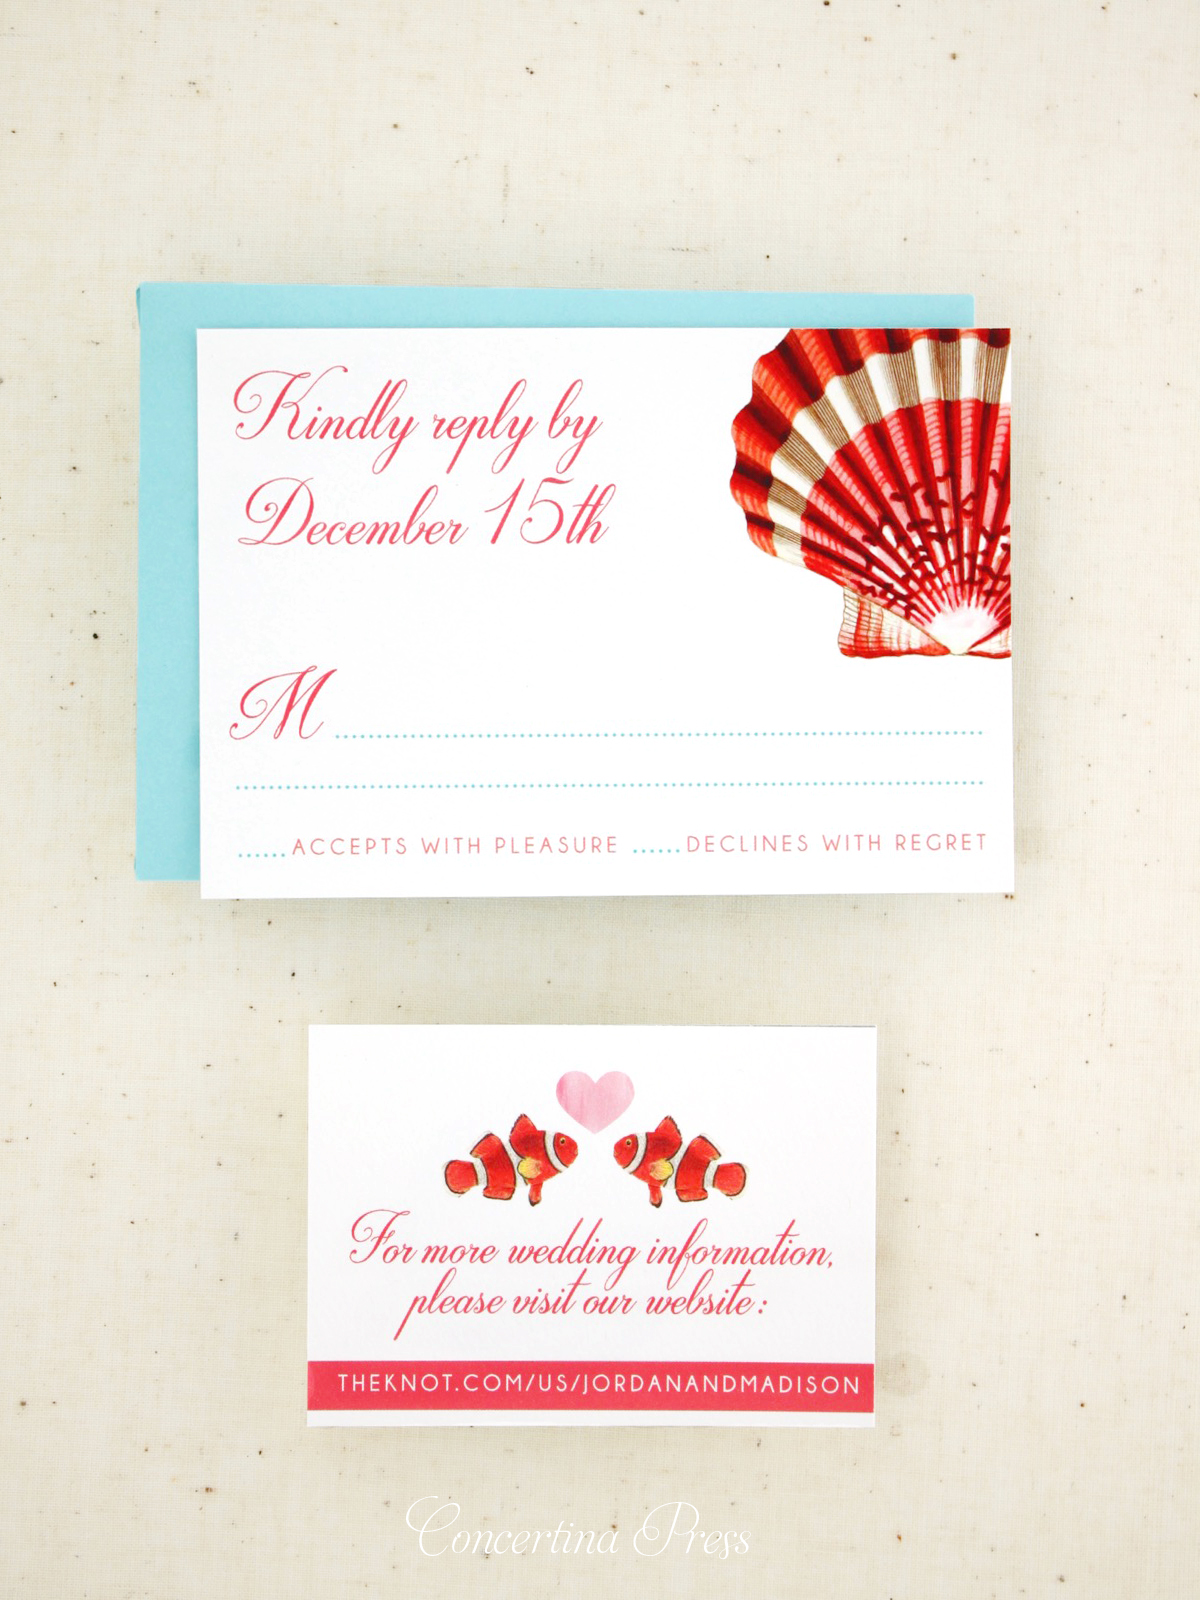 Clownfish website card and Scallop Shell RSVP card from Concertina Press